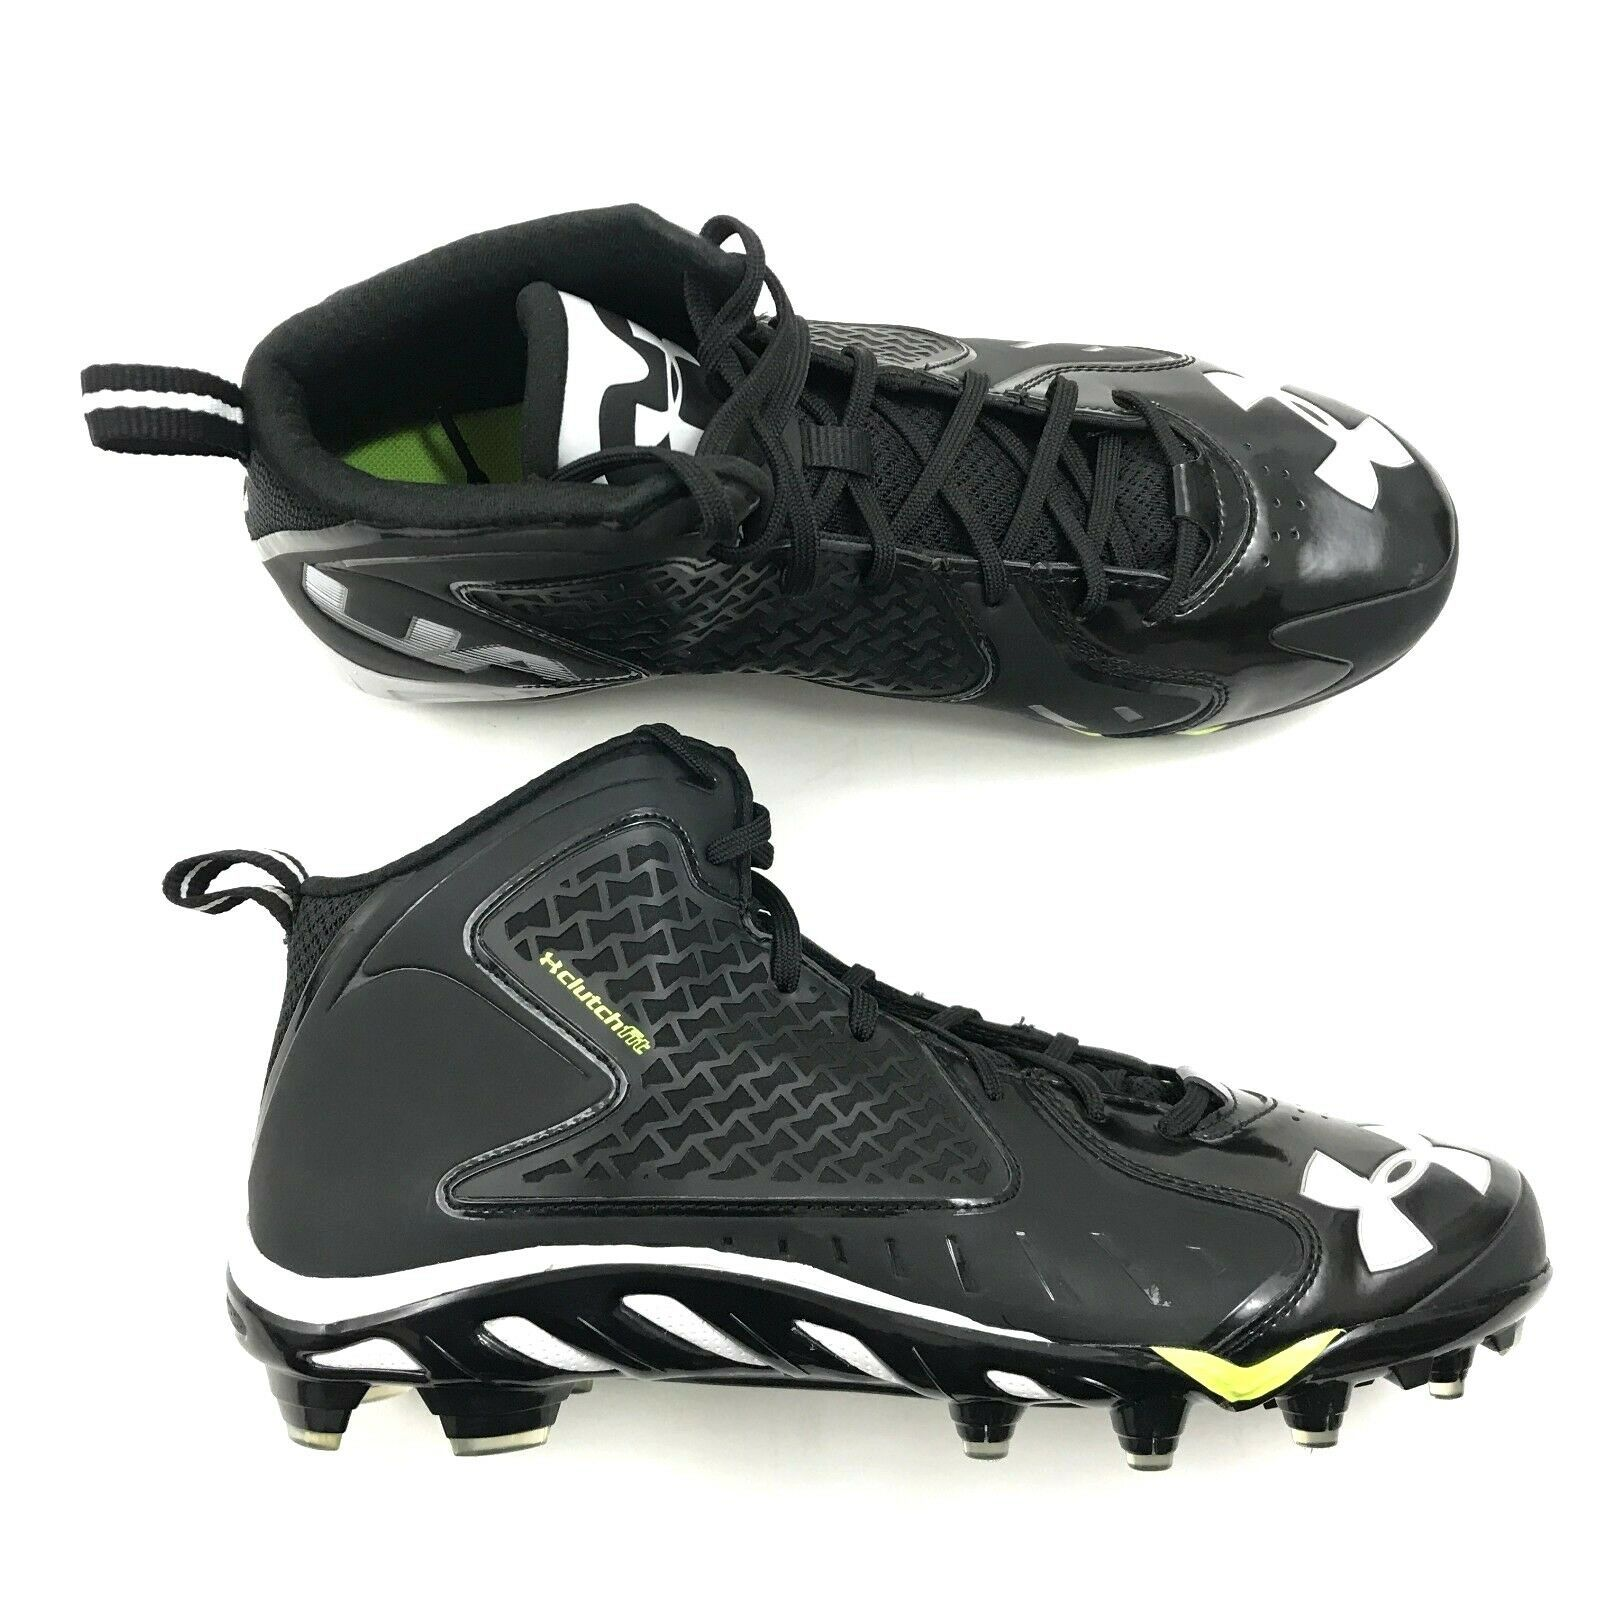 check out aad49 3eca2 Nuevo Under Armour Columna Clutchfit Beisbol Tacos Tamaño 12 Negro Medio -   57.58 · Advanced search for Under Armour Baseball Cleats